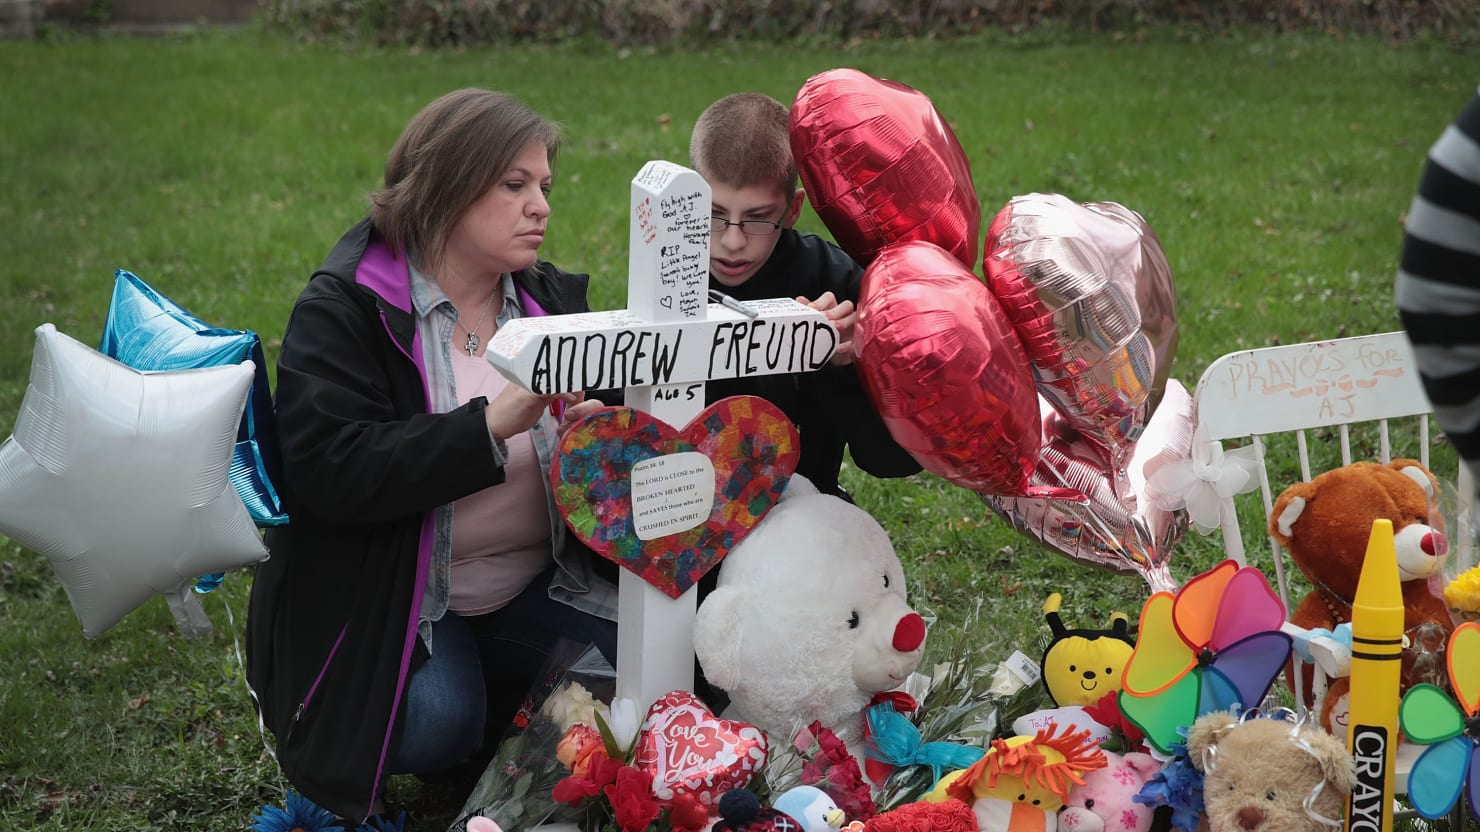 A.J. Freund's Parents Plead Not Guilty to Murdering 5-Year-Old Son